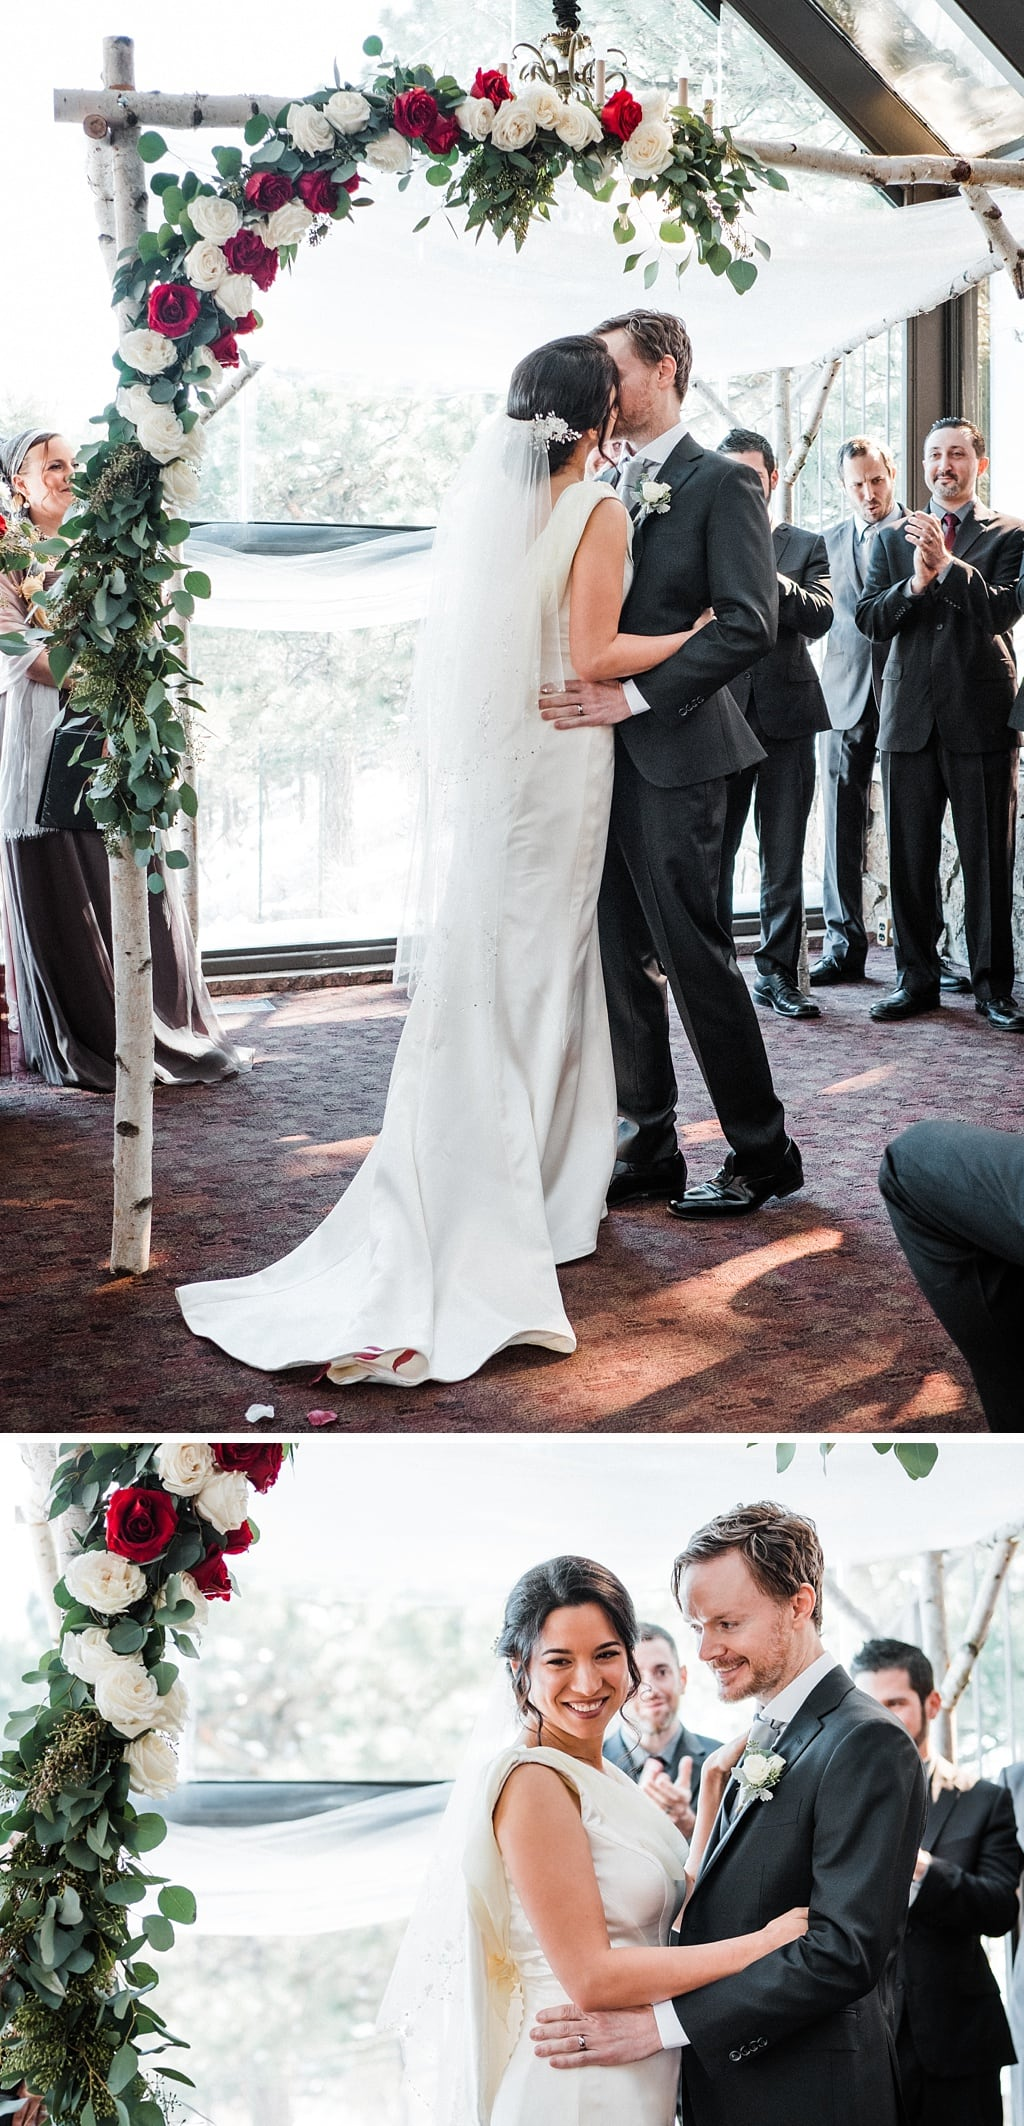 Jewish ceremony at Flagstaff House wedding in Boulder, Colorado, bride and groom first kiss